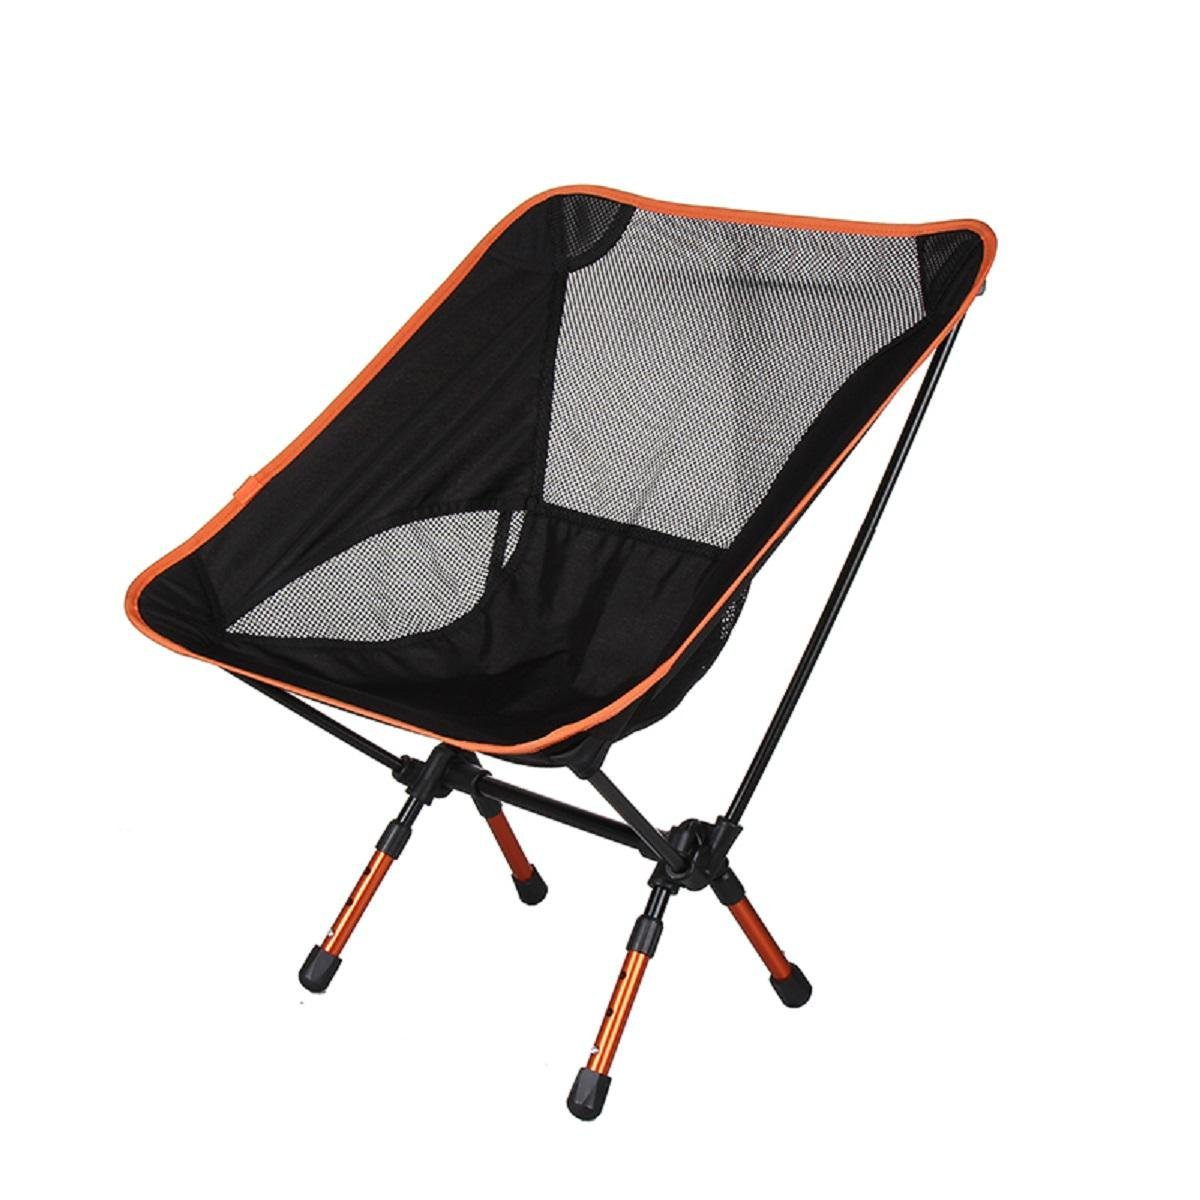 GAOJIAN Aluminum Alloy Folding Moon Chair Outdoor Ultra-Light Portable Multi-Function Fishing Chair Retractable Garden Leisure Chair Load 300 Pounds , c